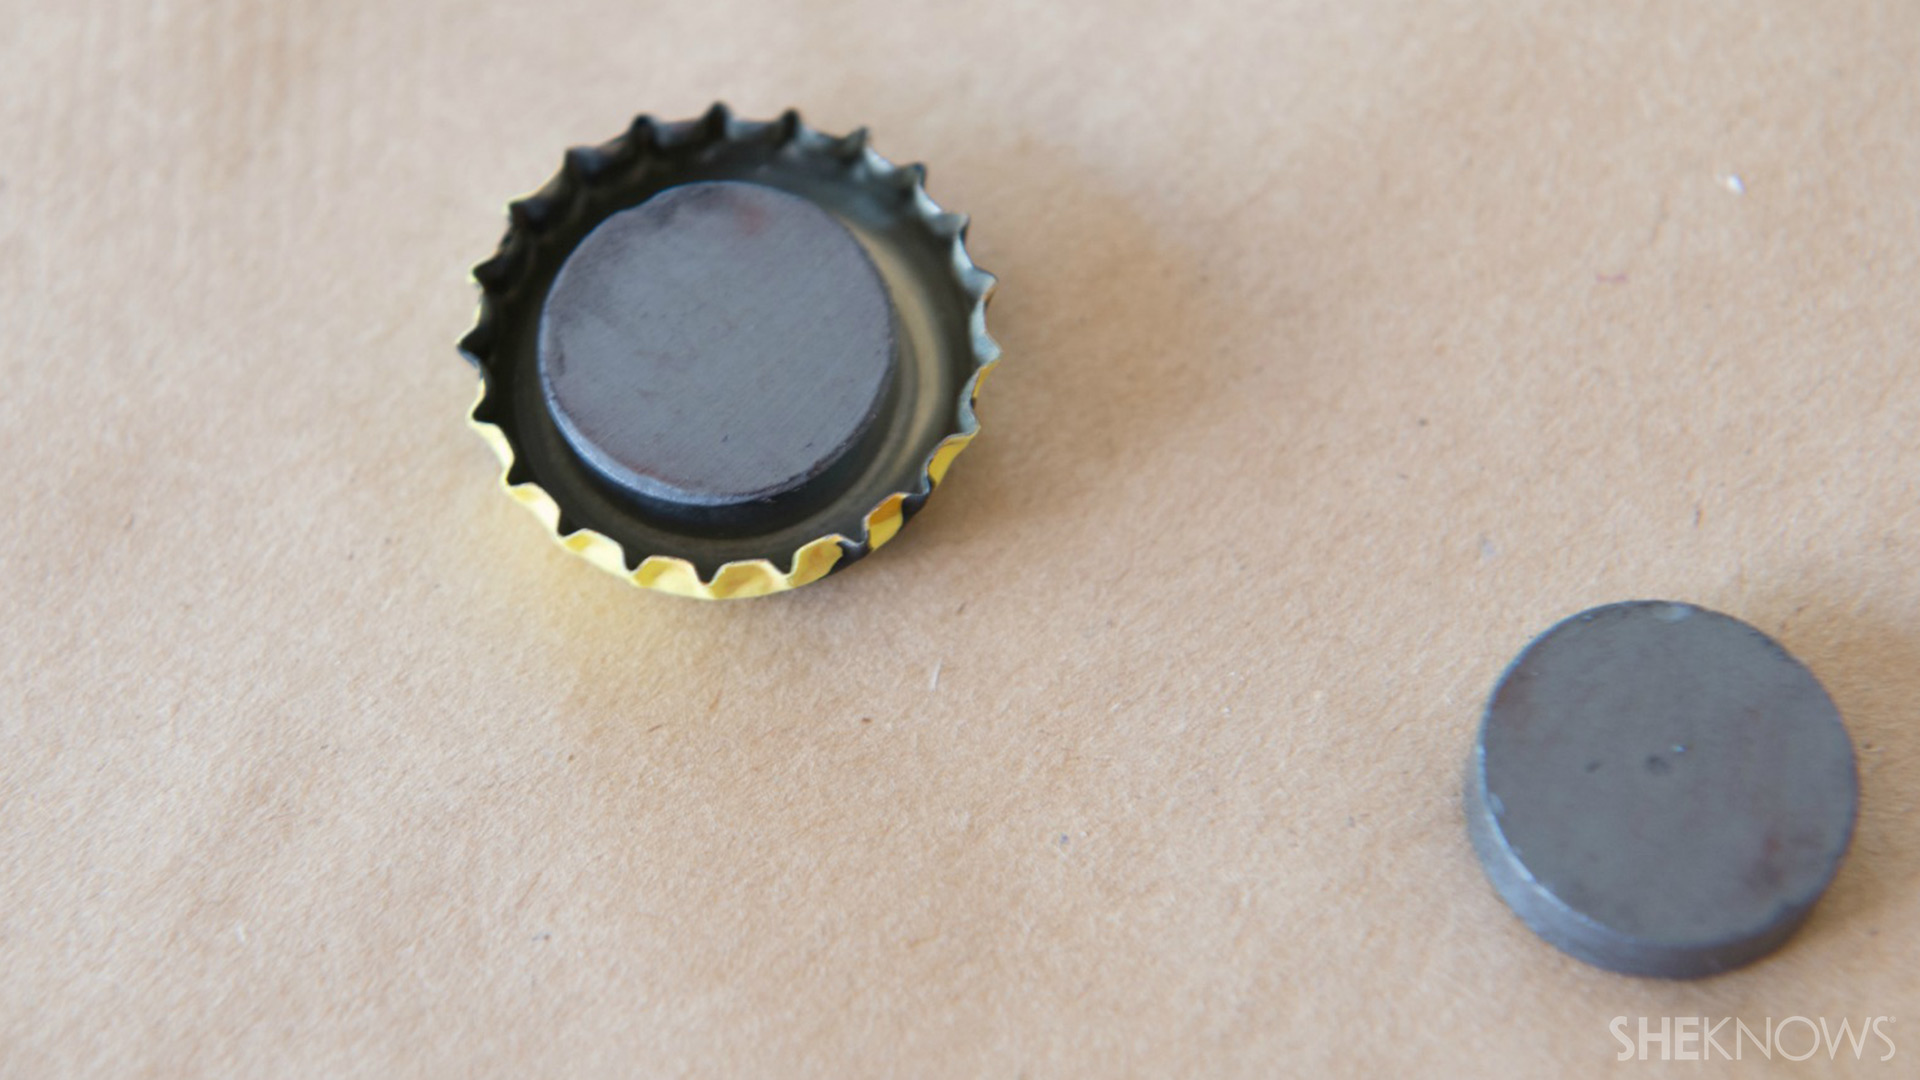 Bottle cap magnets | Sheknows.com - glue magnet